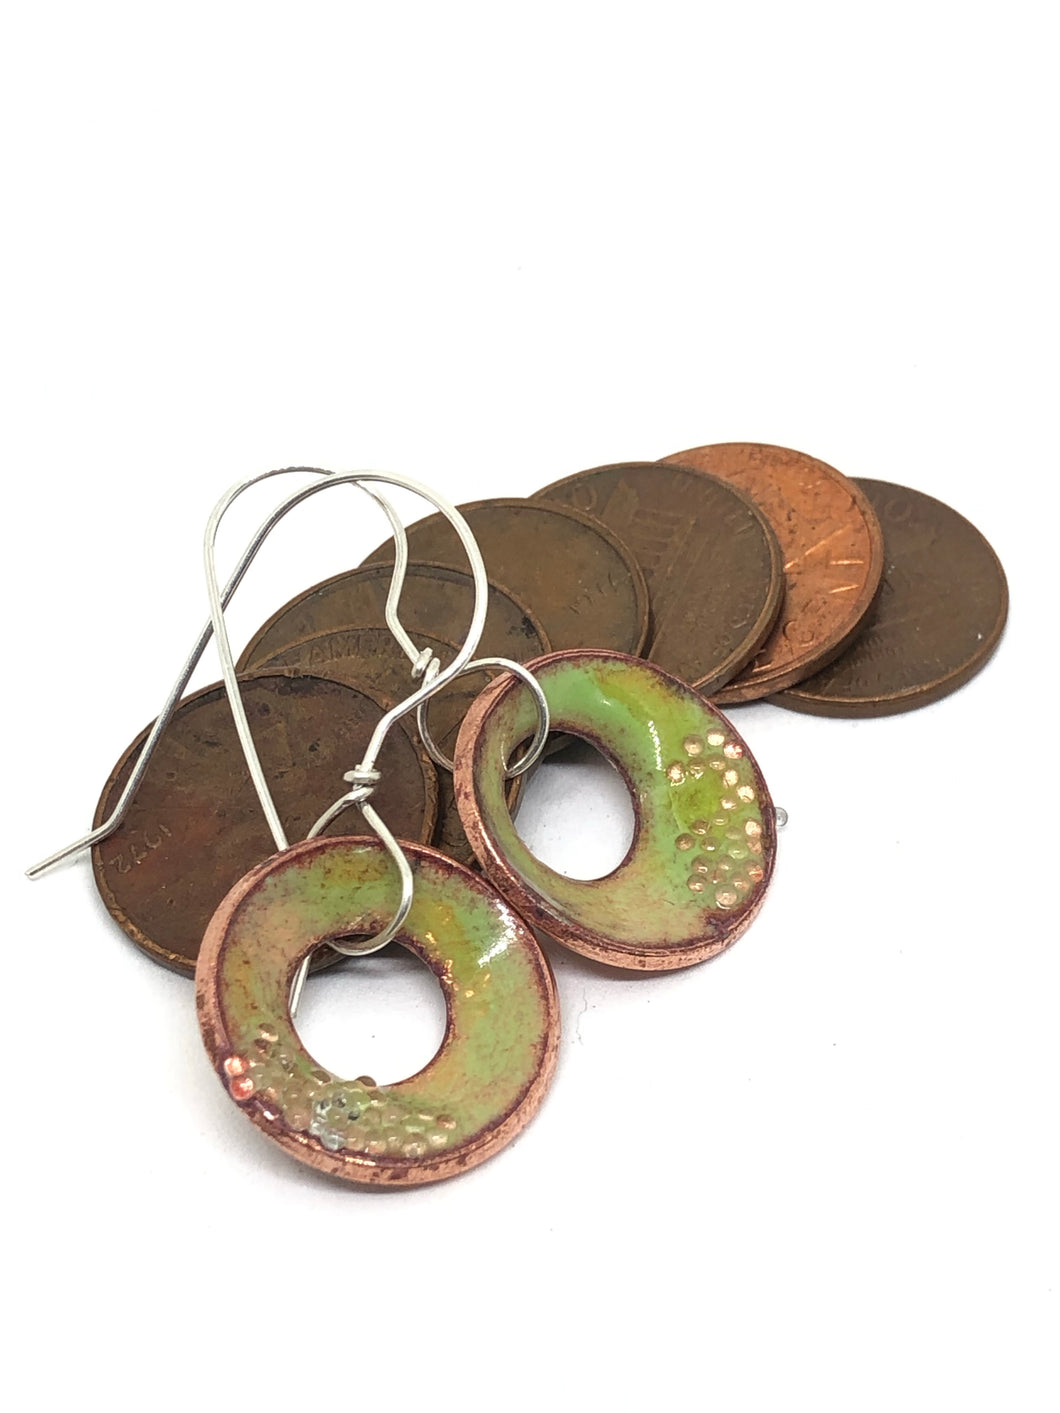 Breezy Green Copper Penny Earrings Single-Dangled